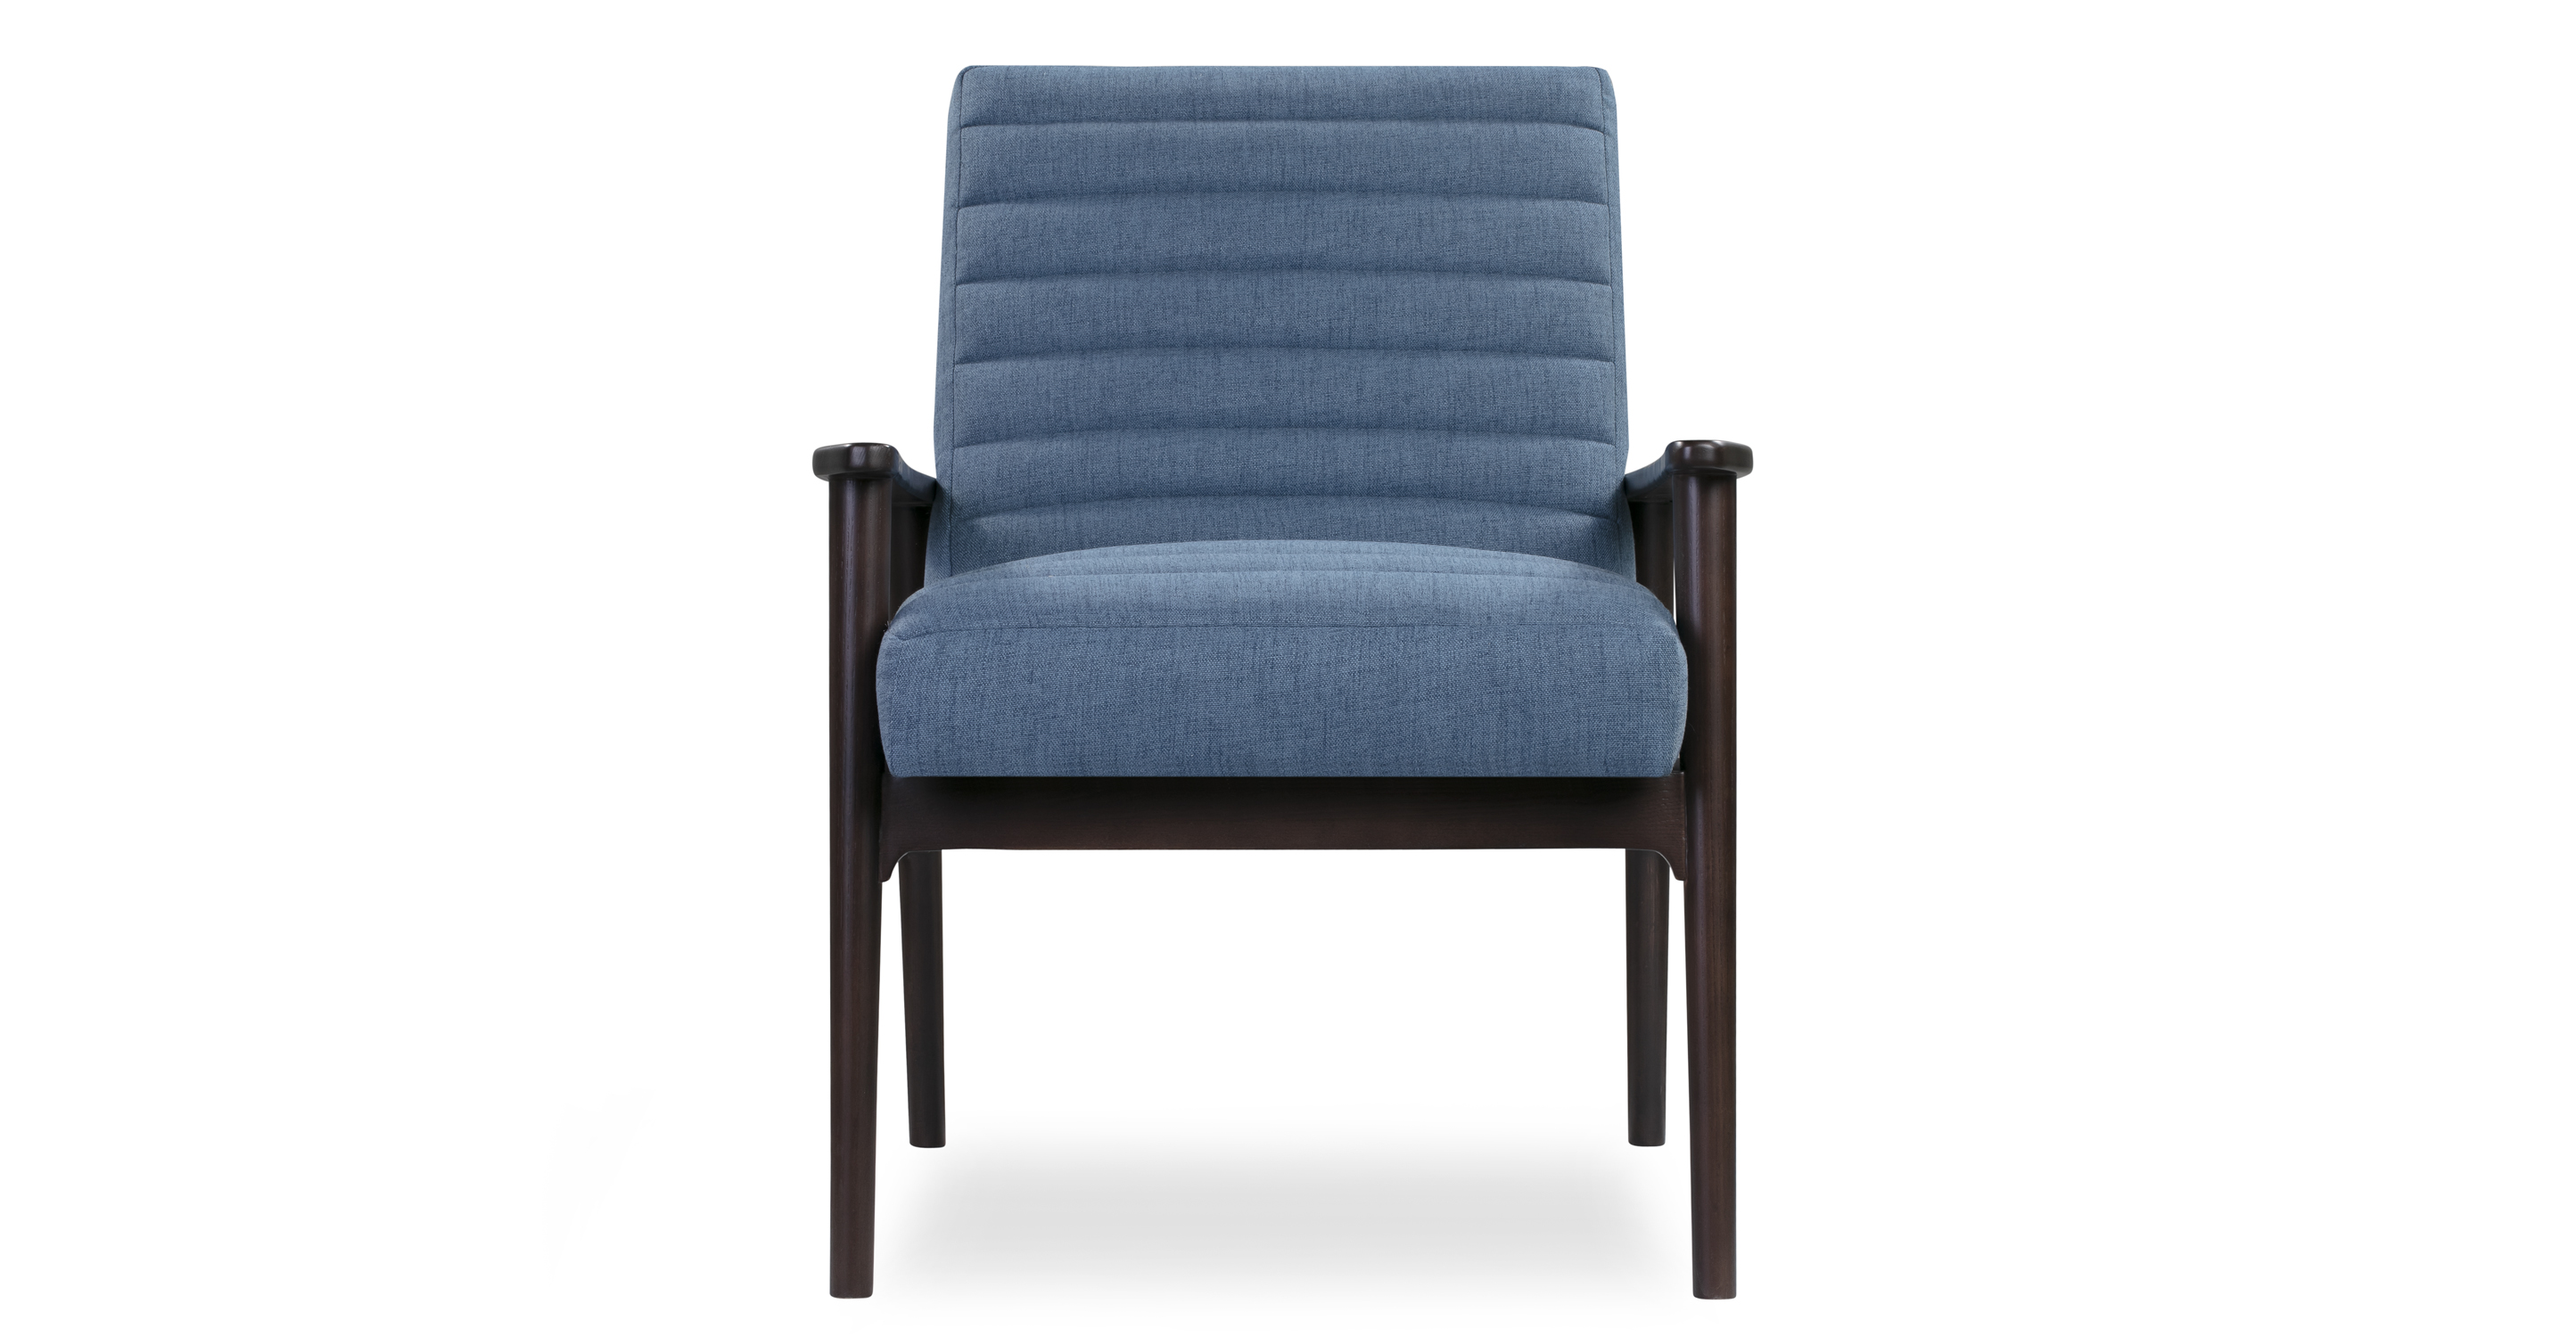 "Mies 26"" Fabric Chair, Stained Ash/Denim"